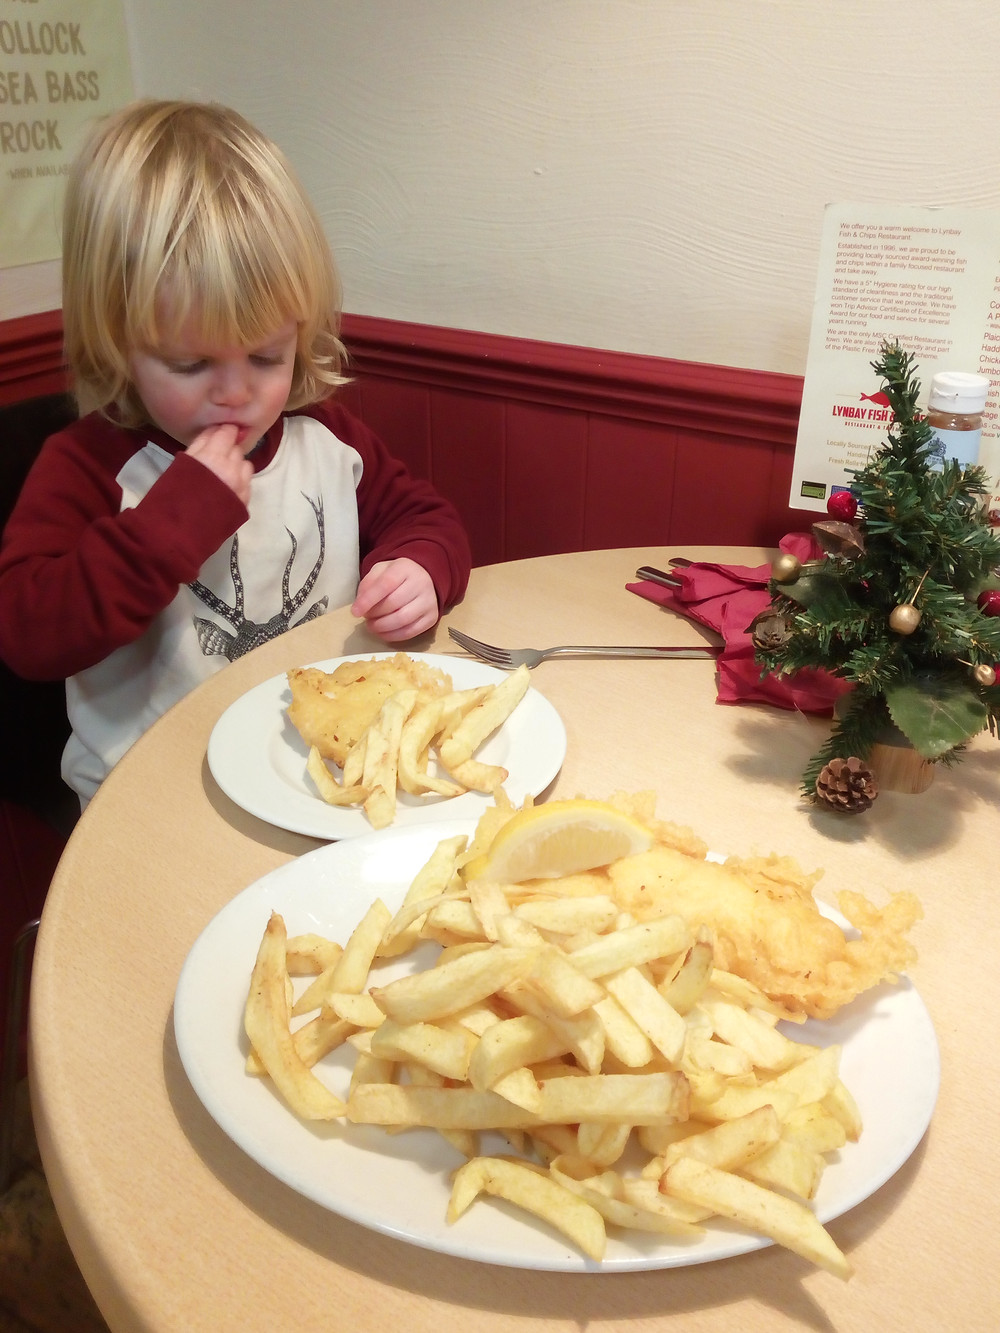 Eating gluten-free fish and chips in Ilfracombe